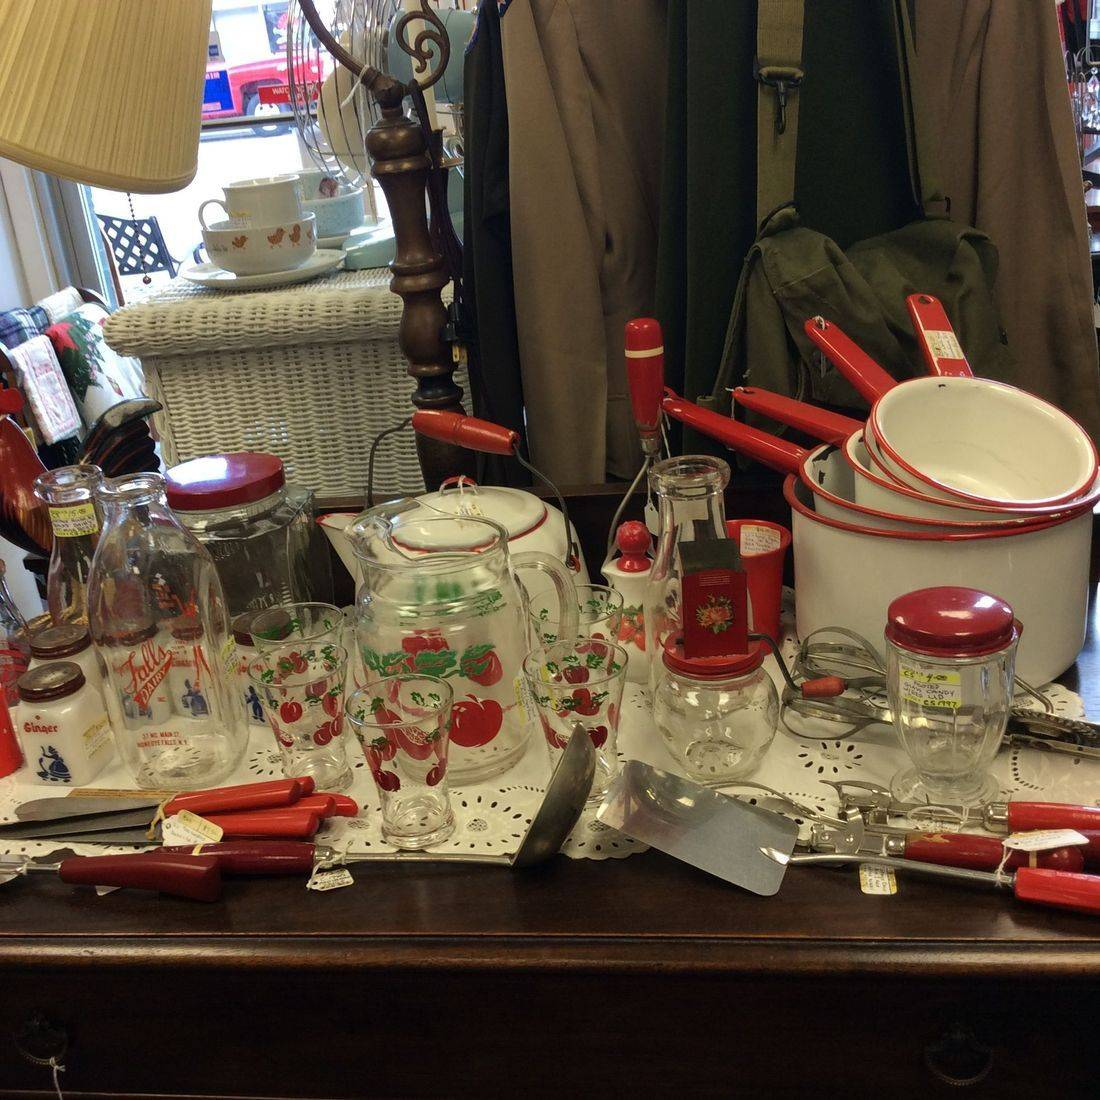 Vintage Red & White Enamelware and Misc. Kitchen Utensils  (prices vary)